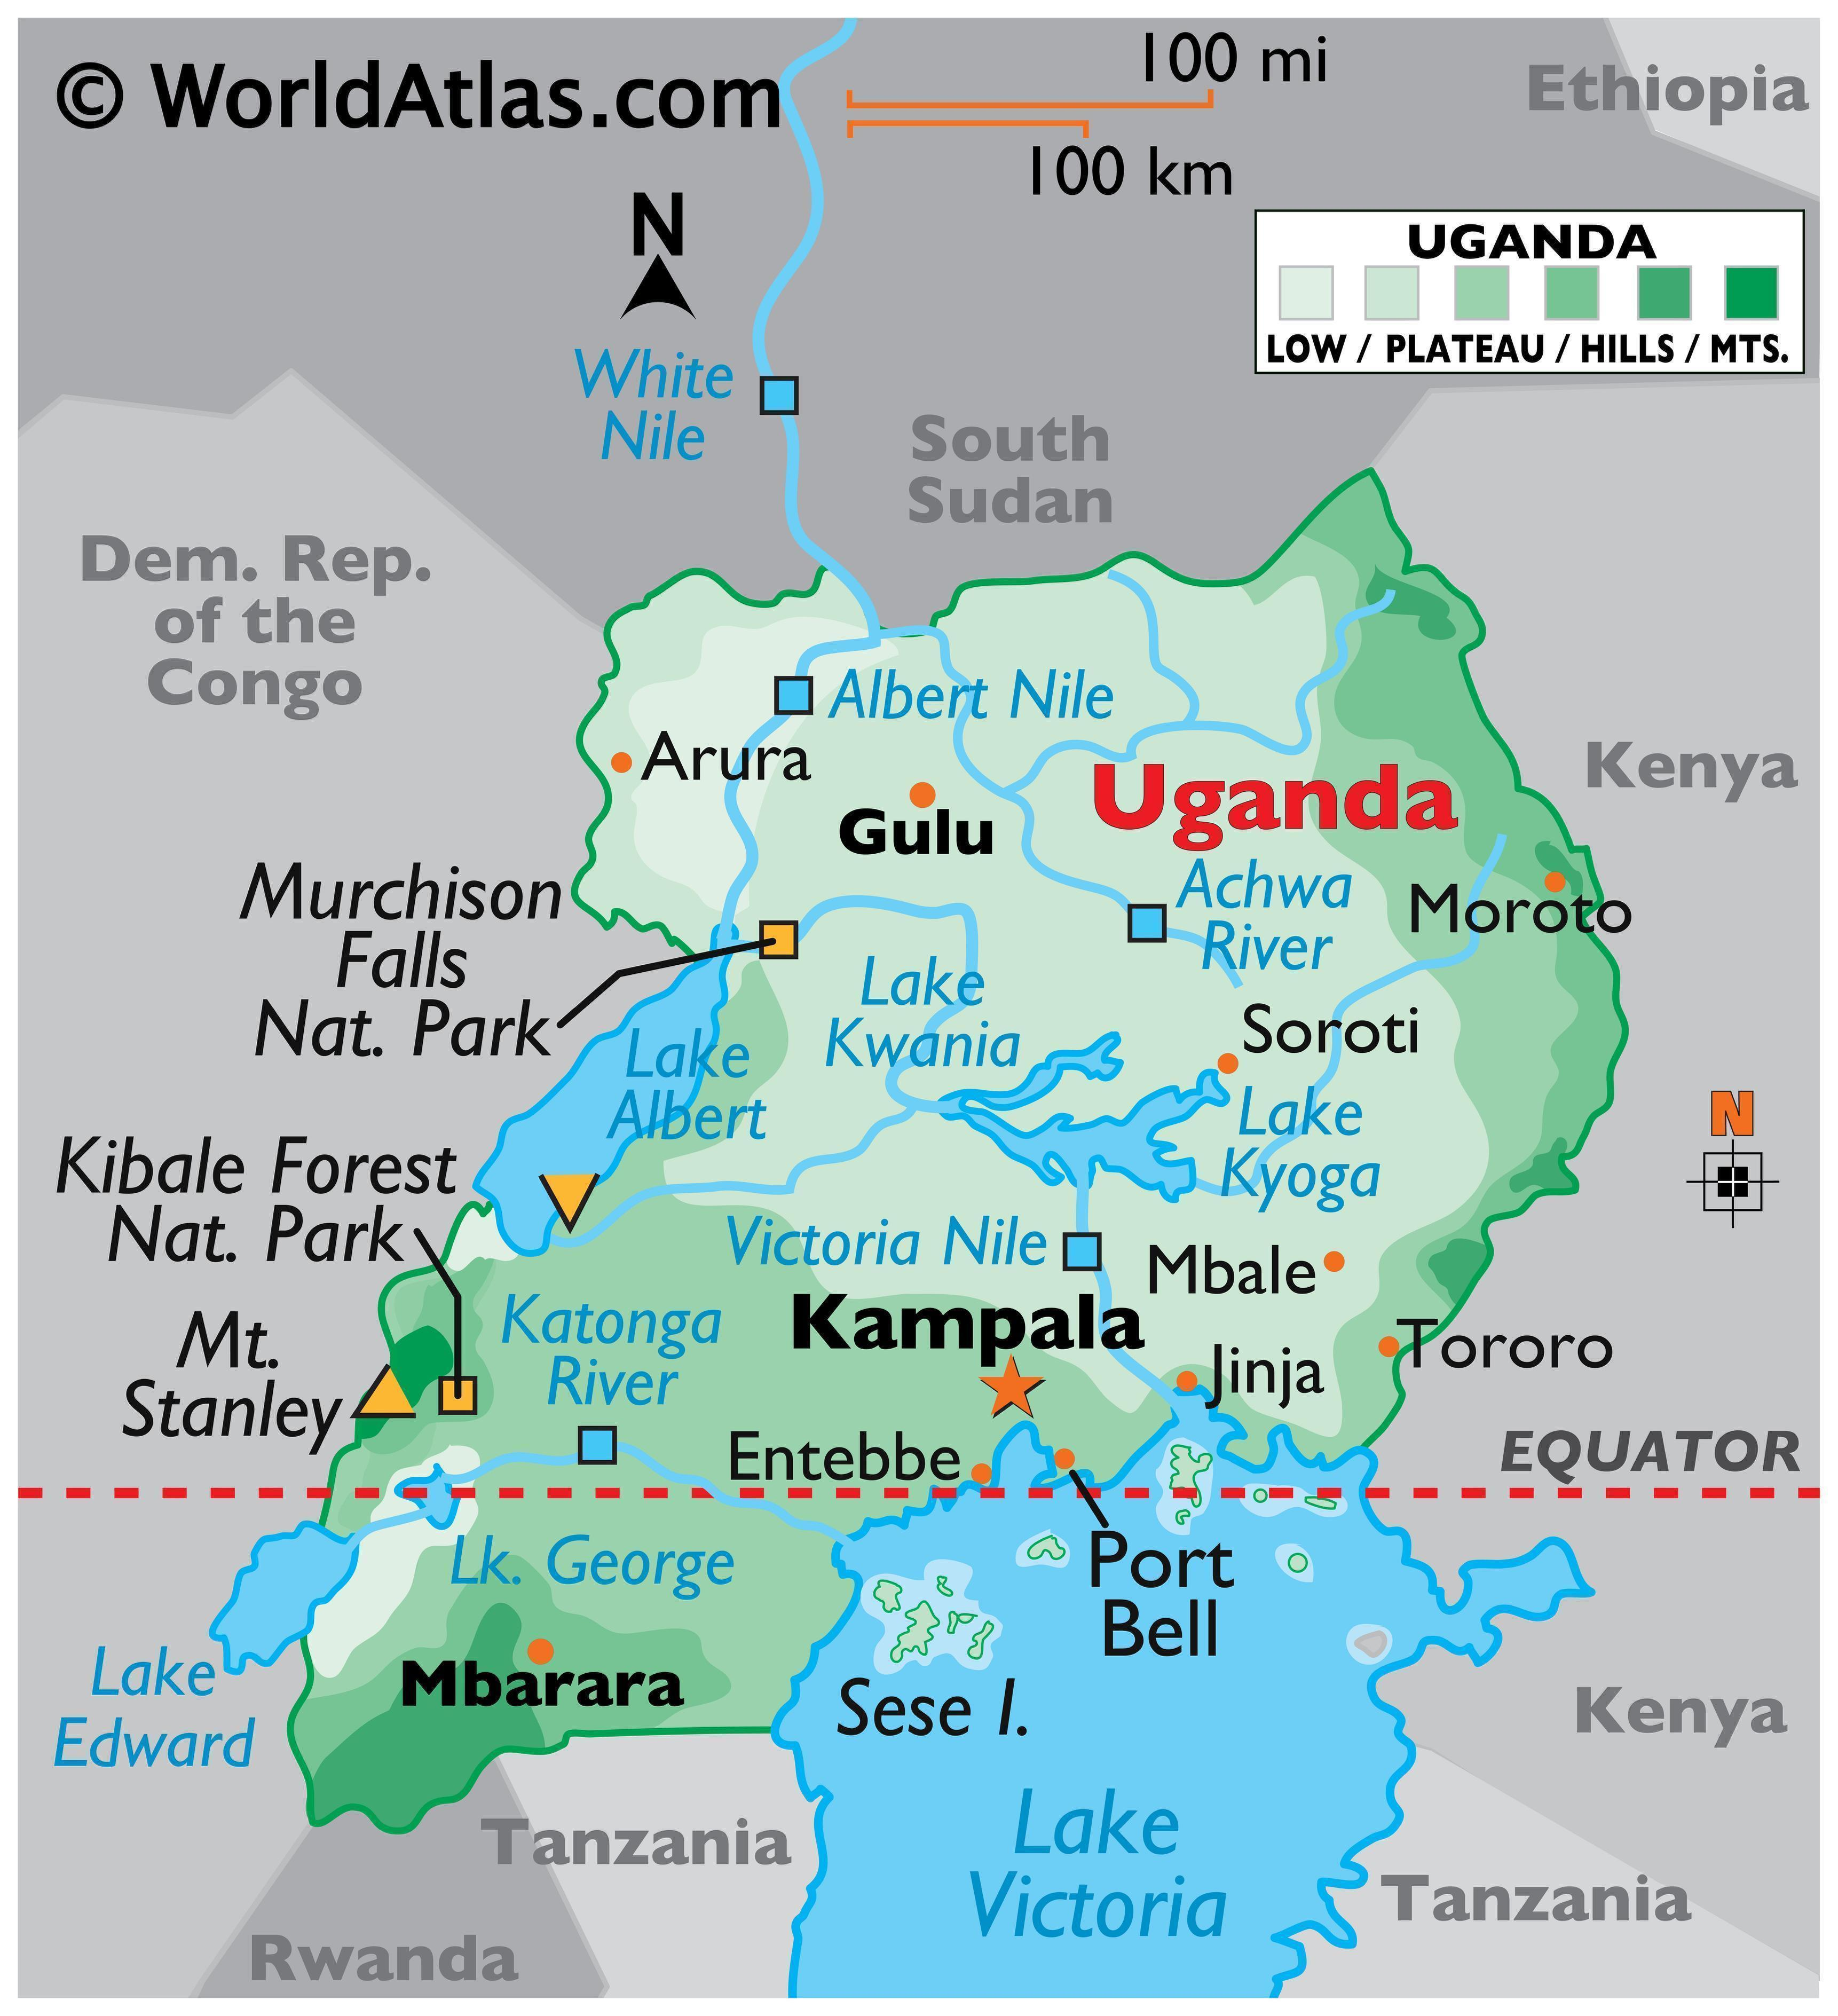 Physical Map of Uganda showing the state boundaries and major physical features like mountain ranges, rivers, plateaus, lakes, national parks, and relative location of major cities.